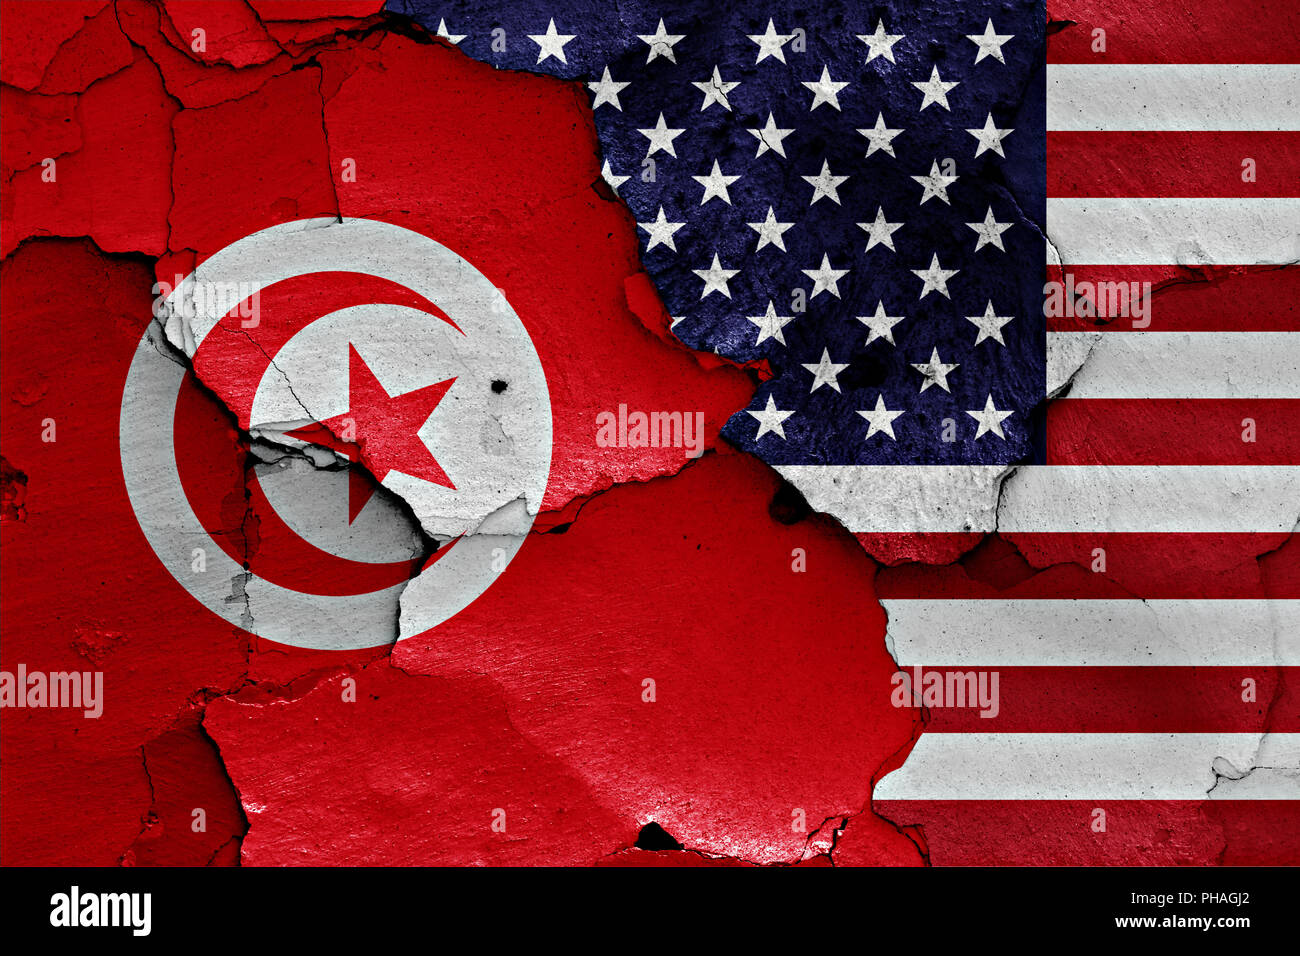 Flags Of Tunisia And Usa Painted On Cracked Wall Stock Photo Alamy